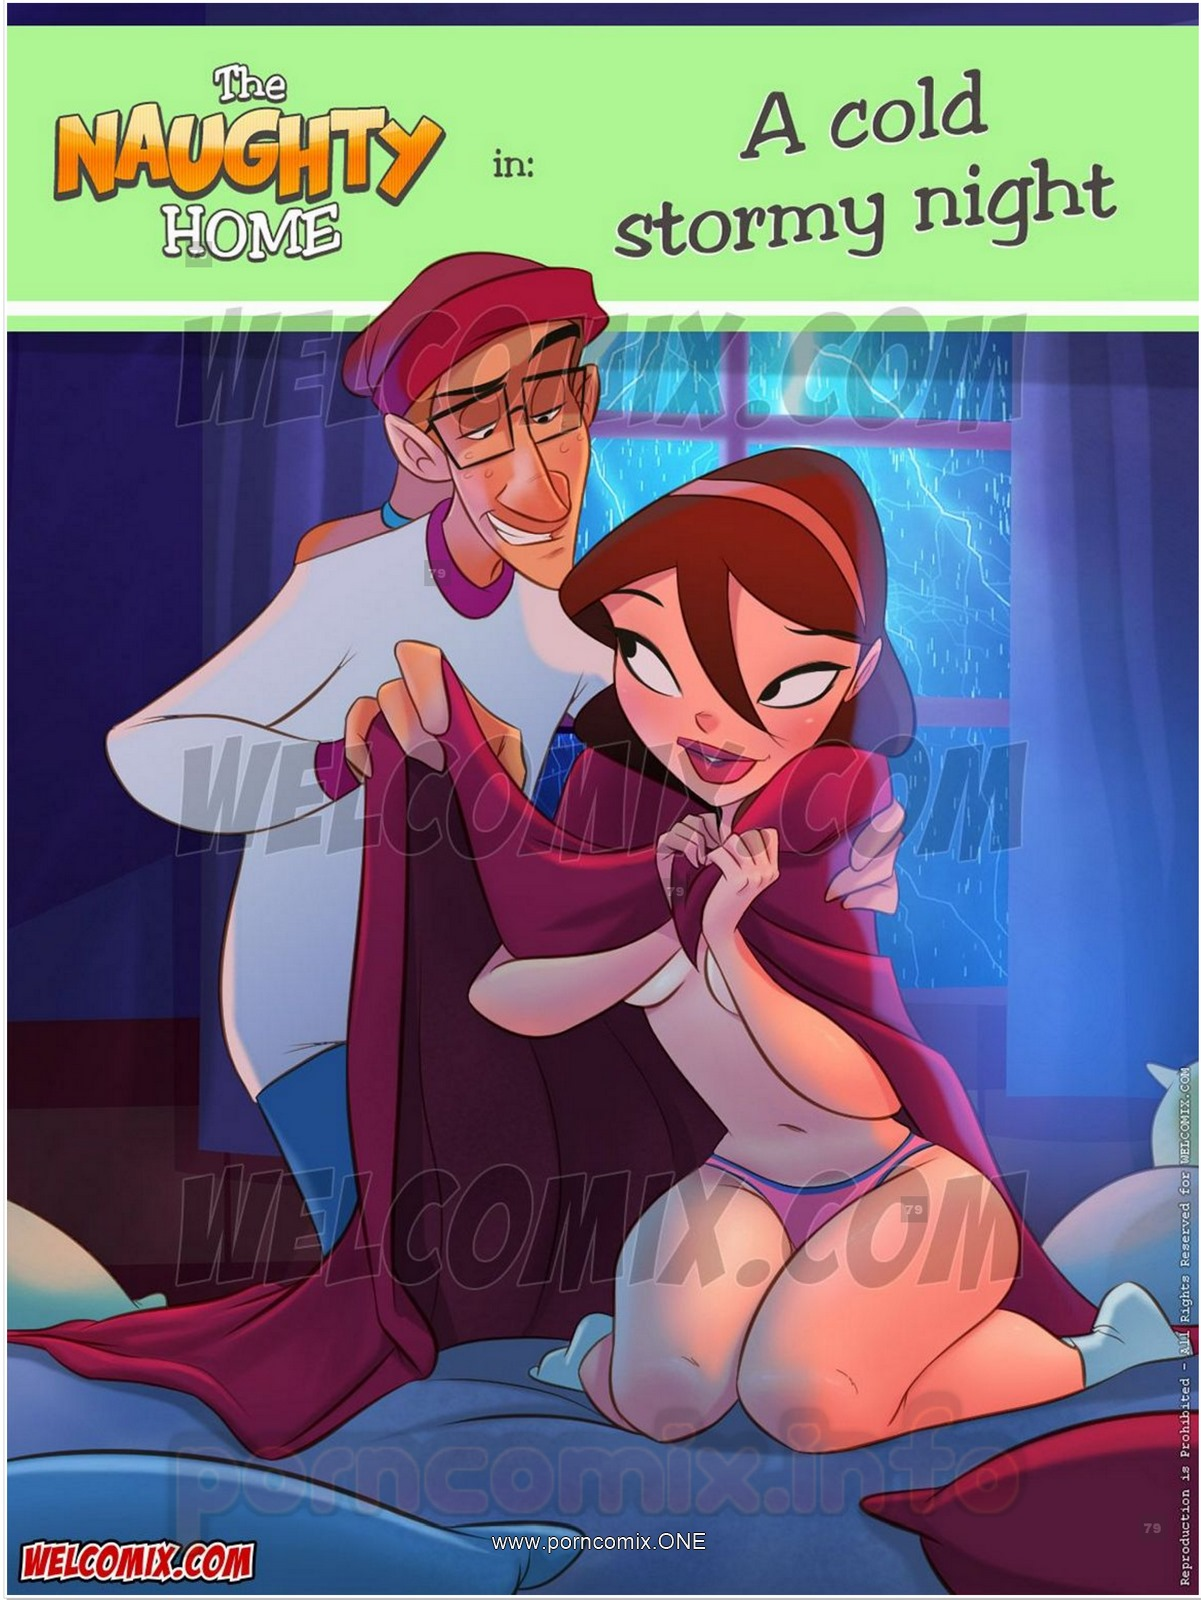 Porn Comics - Naughty Home 21- Cold Stormy Night- Welcomix porn comics 8 muses